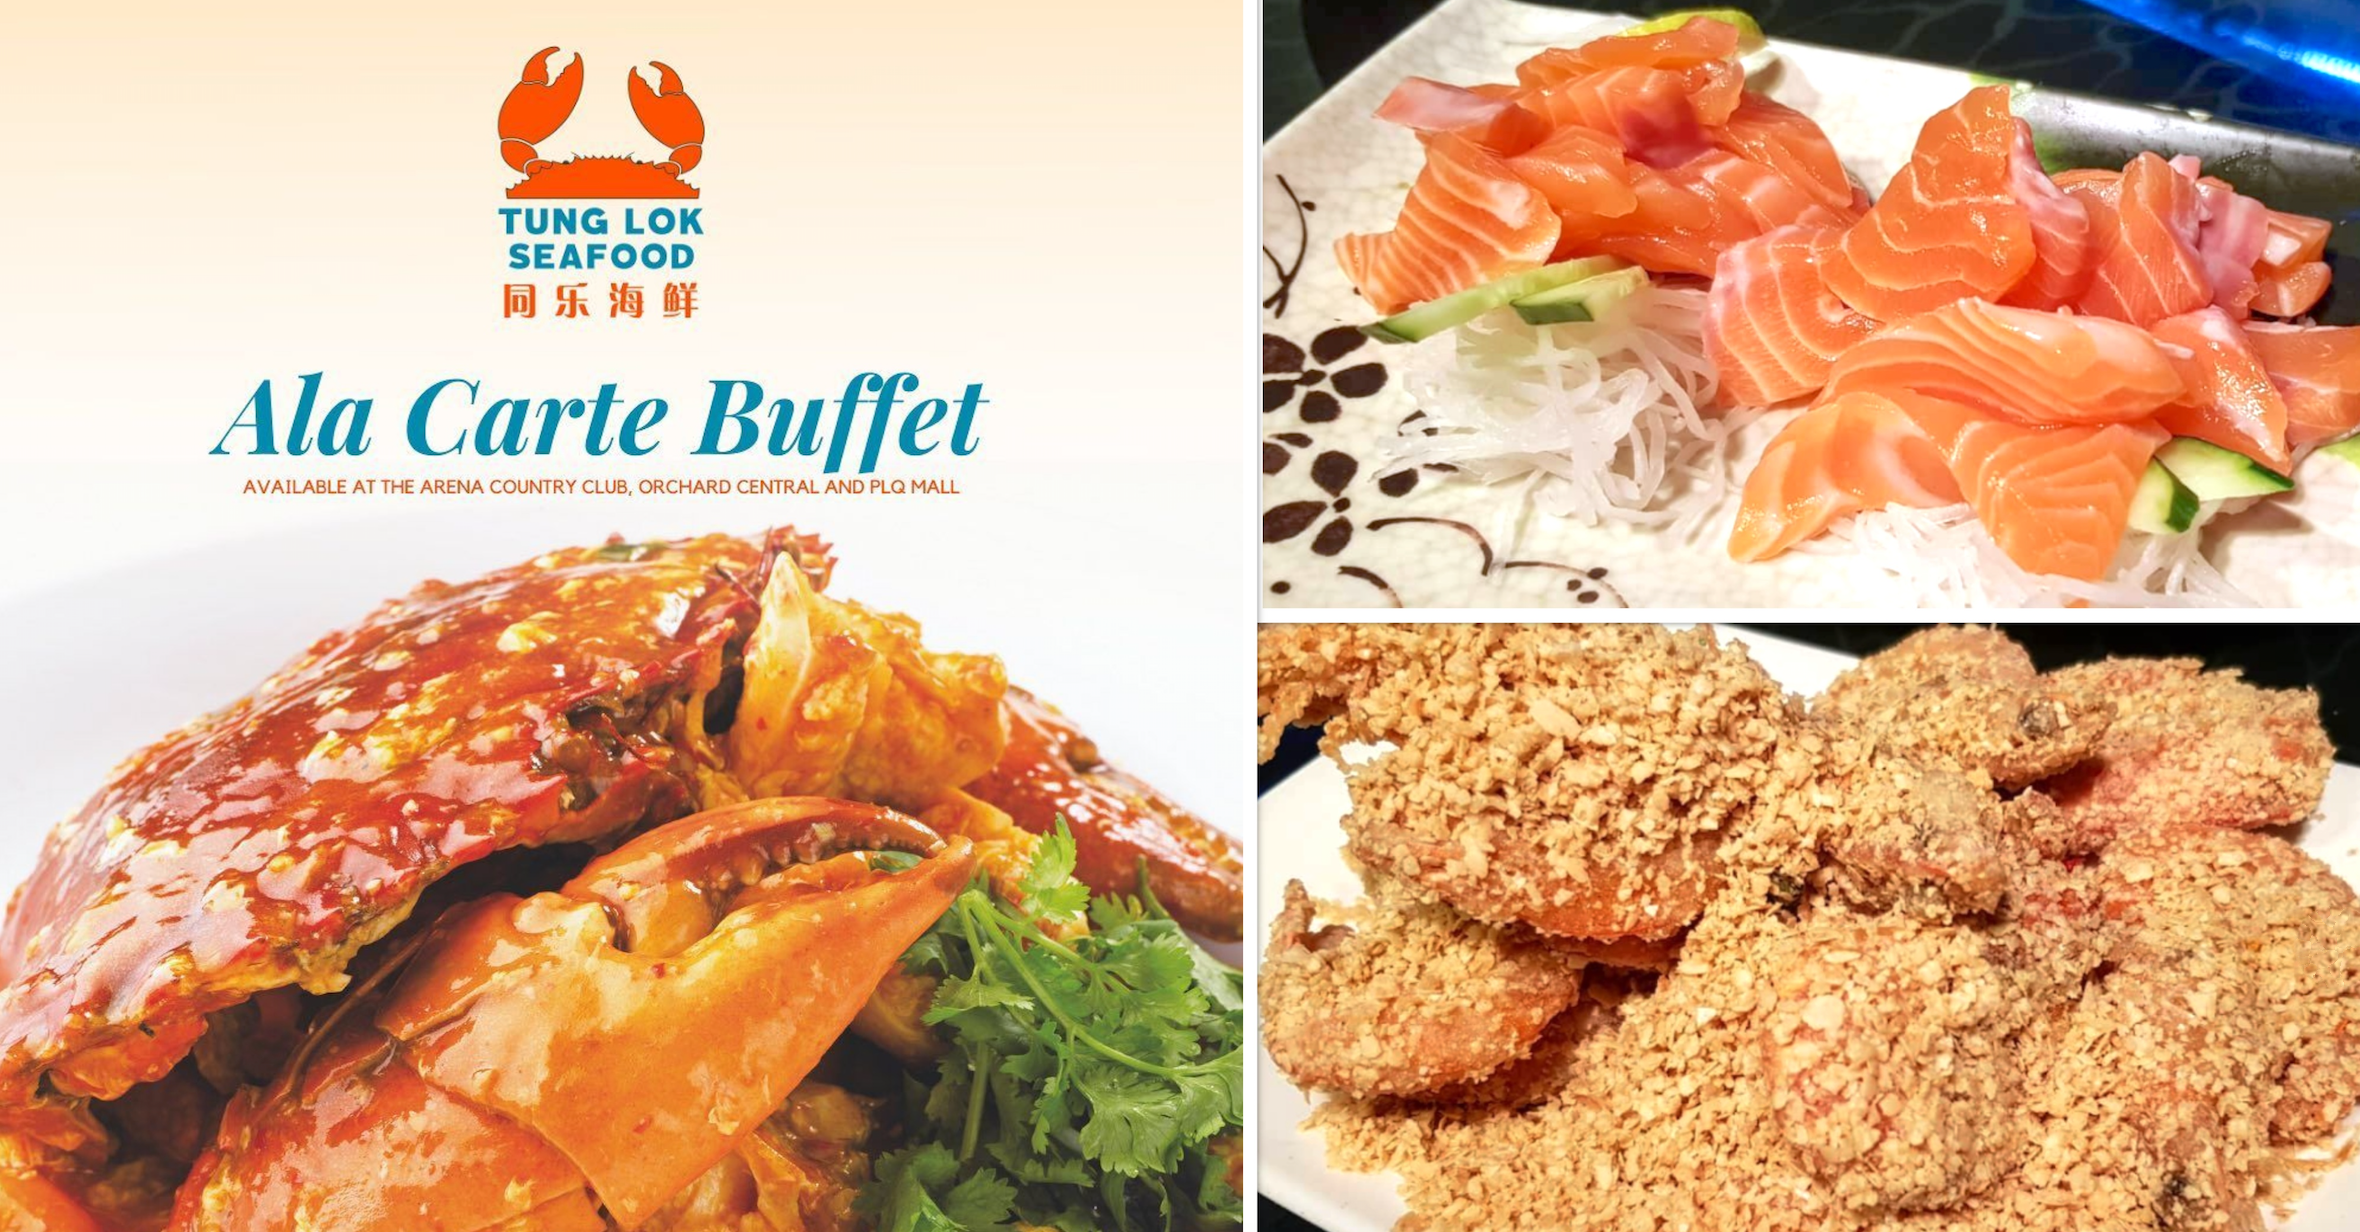 Tung Lok Seafood Launches A La Carte Buffet From S 28 80 Includes Salmon Sashimi Mothership Sg News From Singapore Asia And Around The World